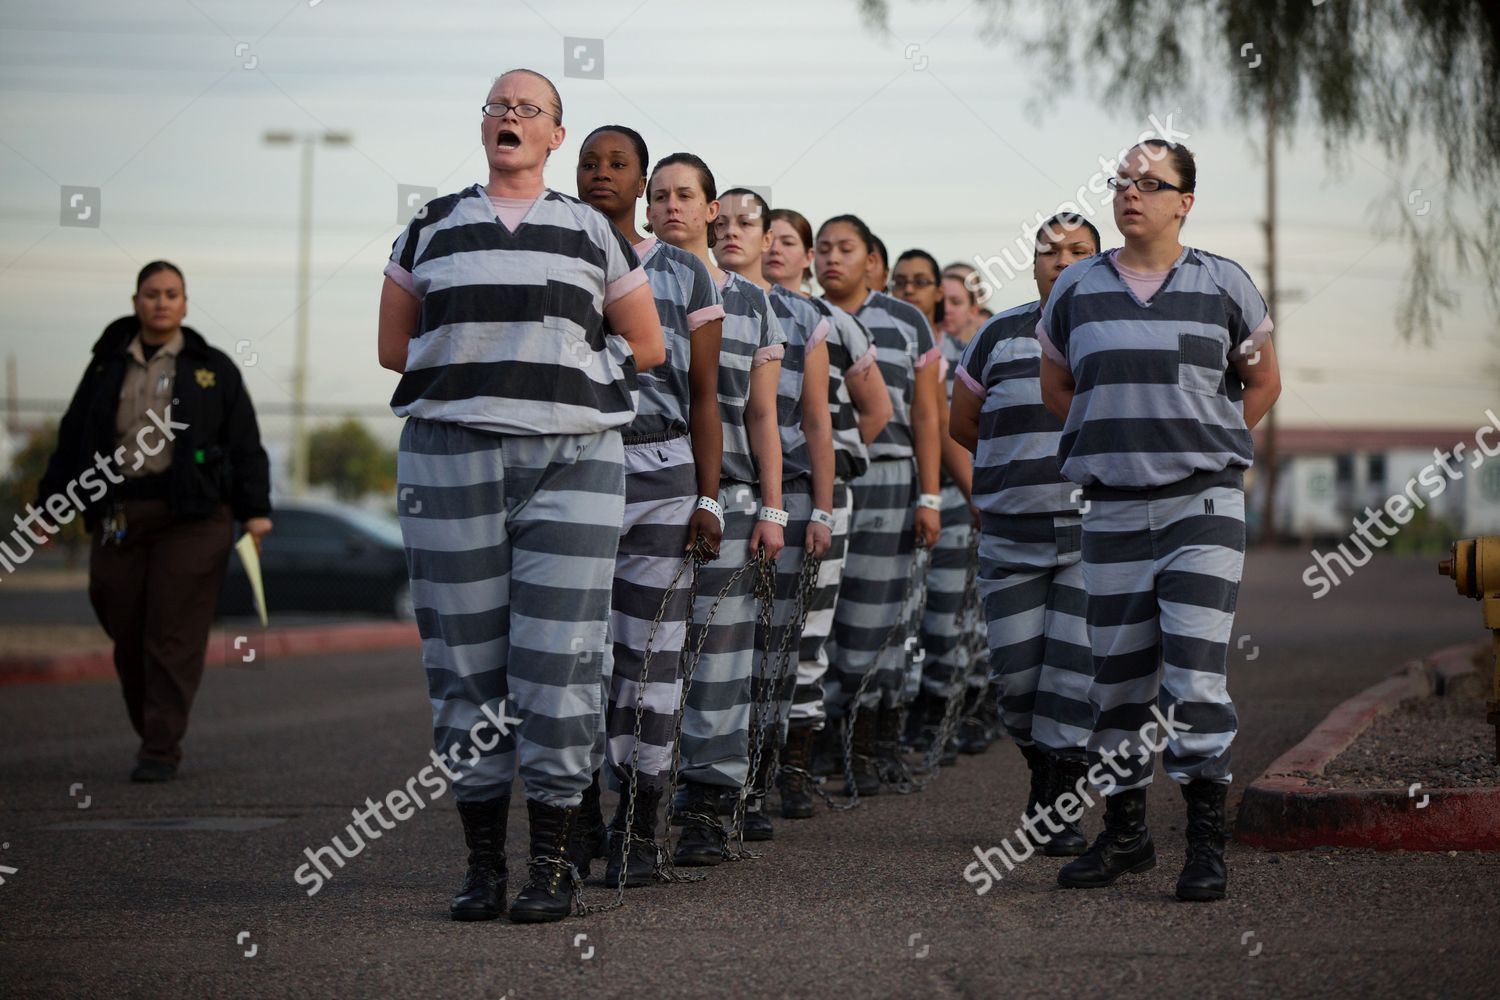 Inmates Editorial Stock Photo - Stock Image | Shutterstock